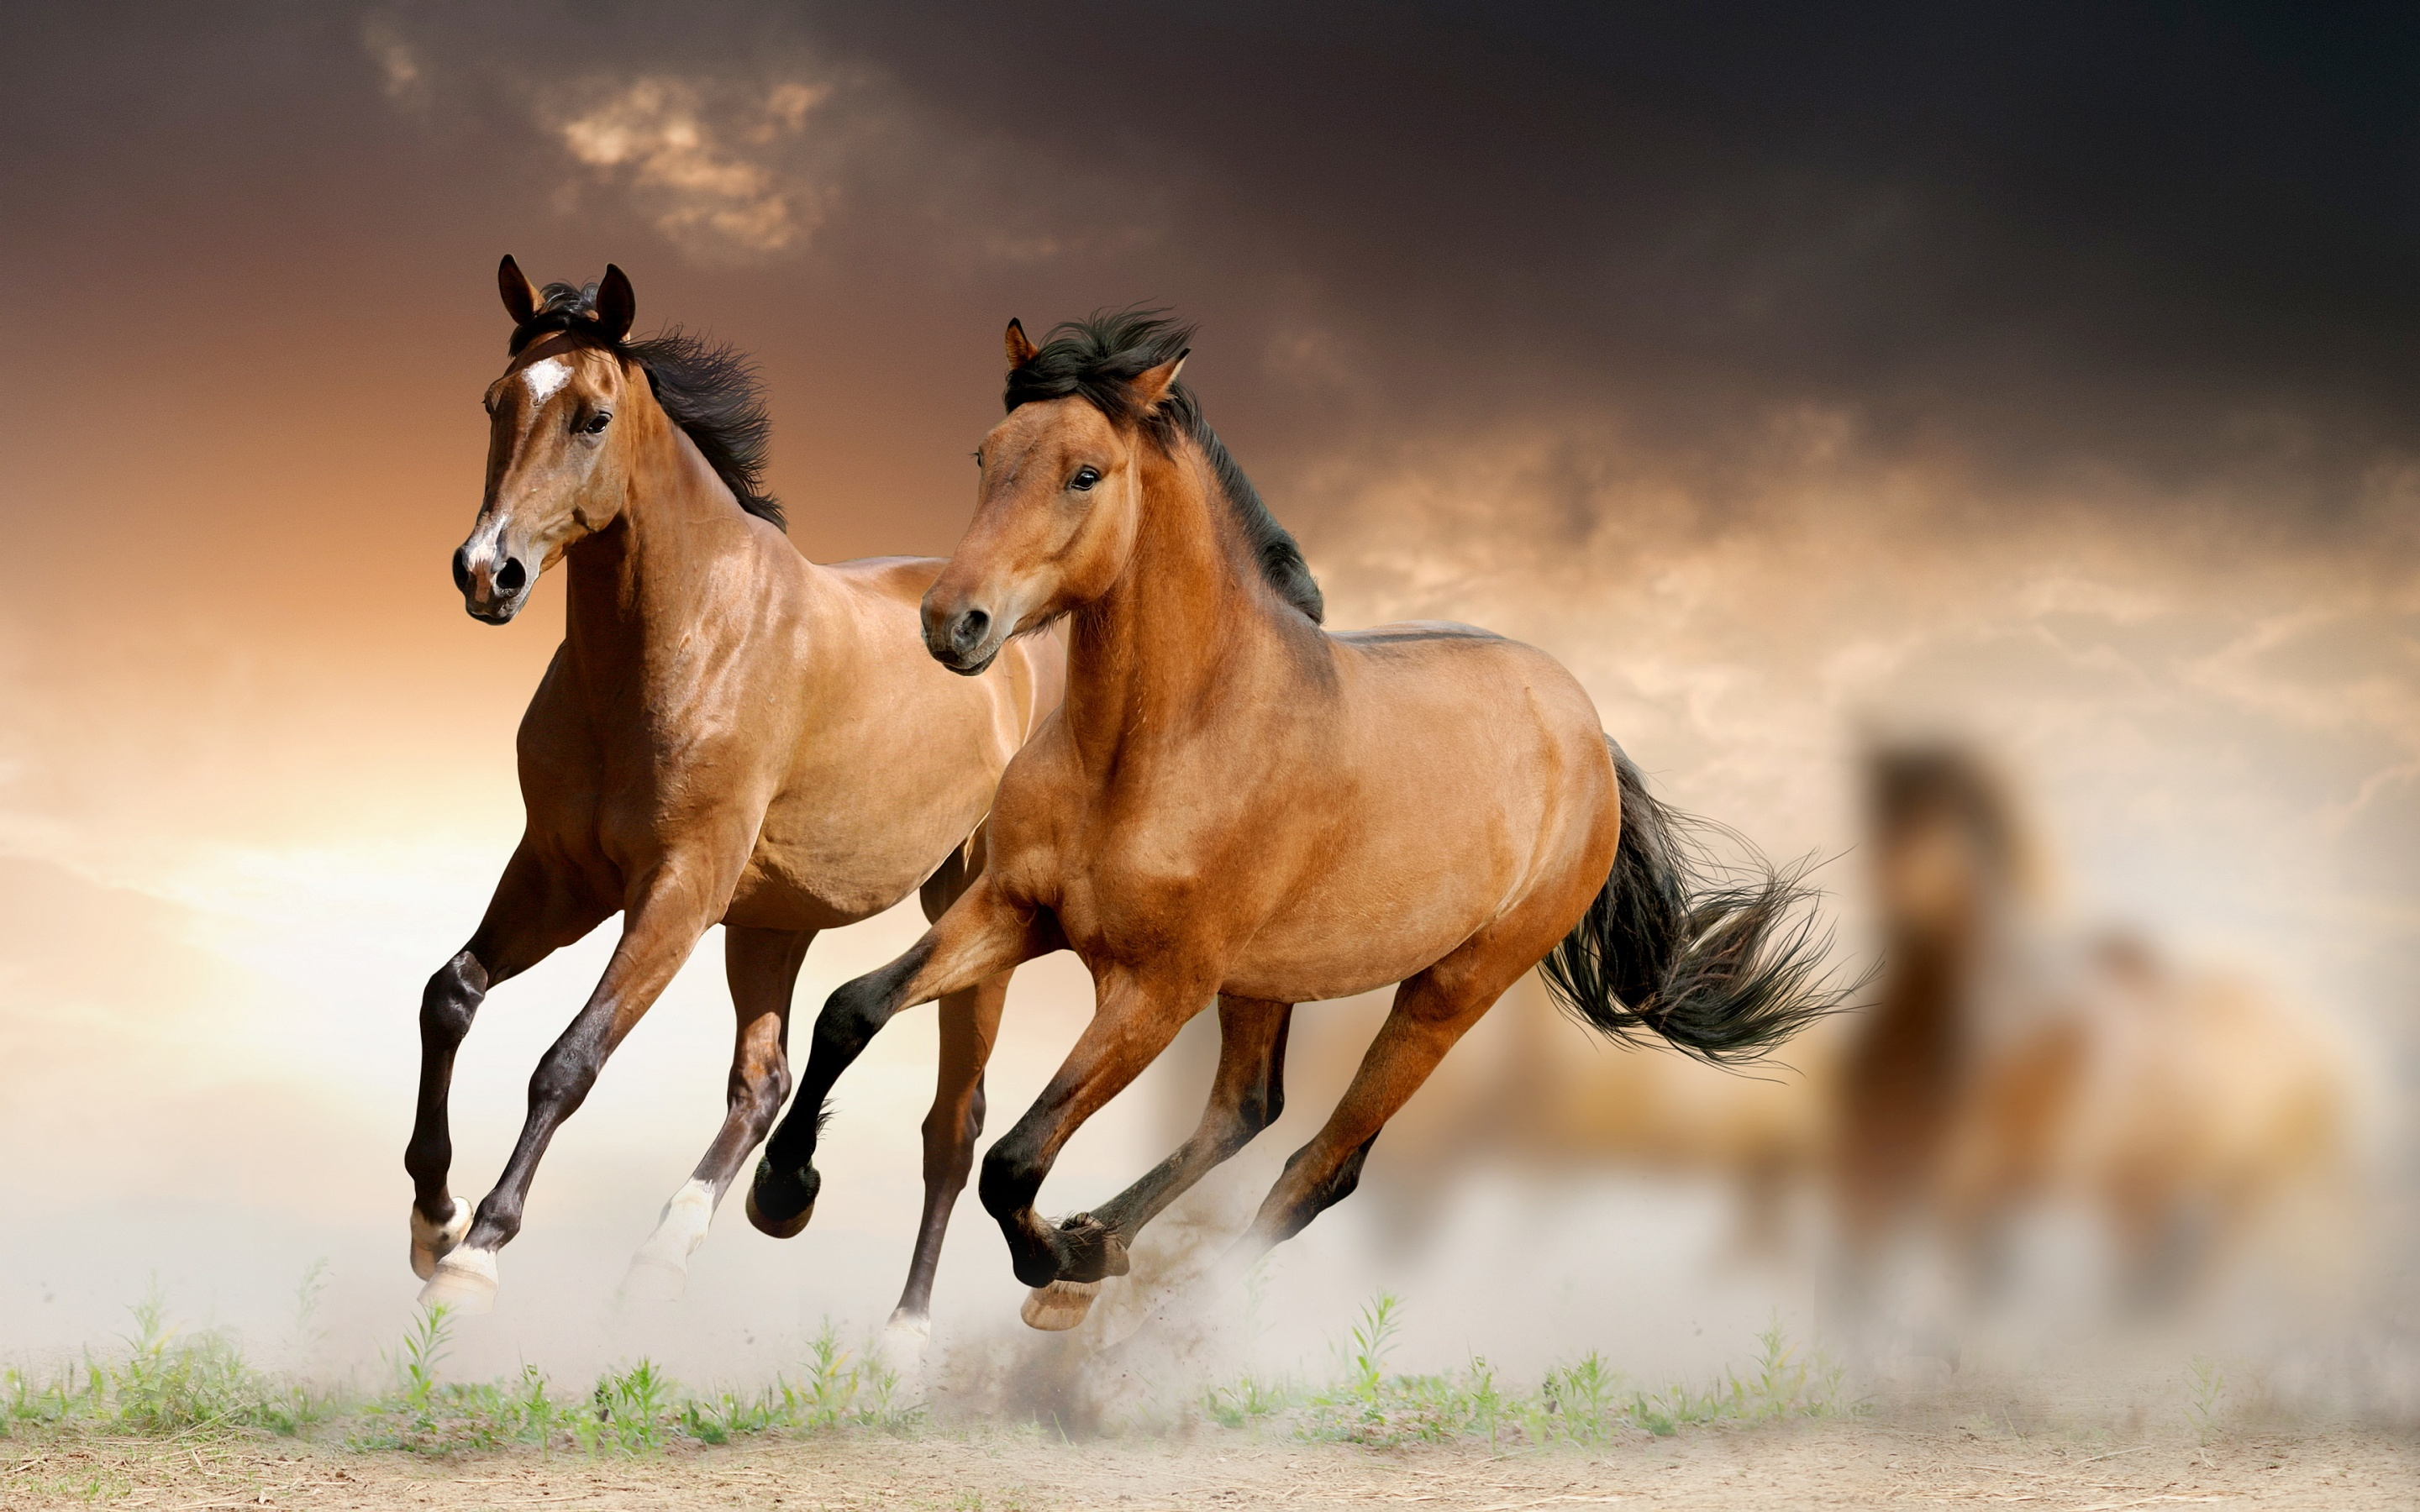 Horse Wallpaper Windows Downloads